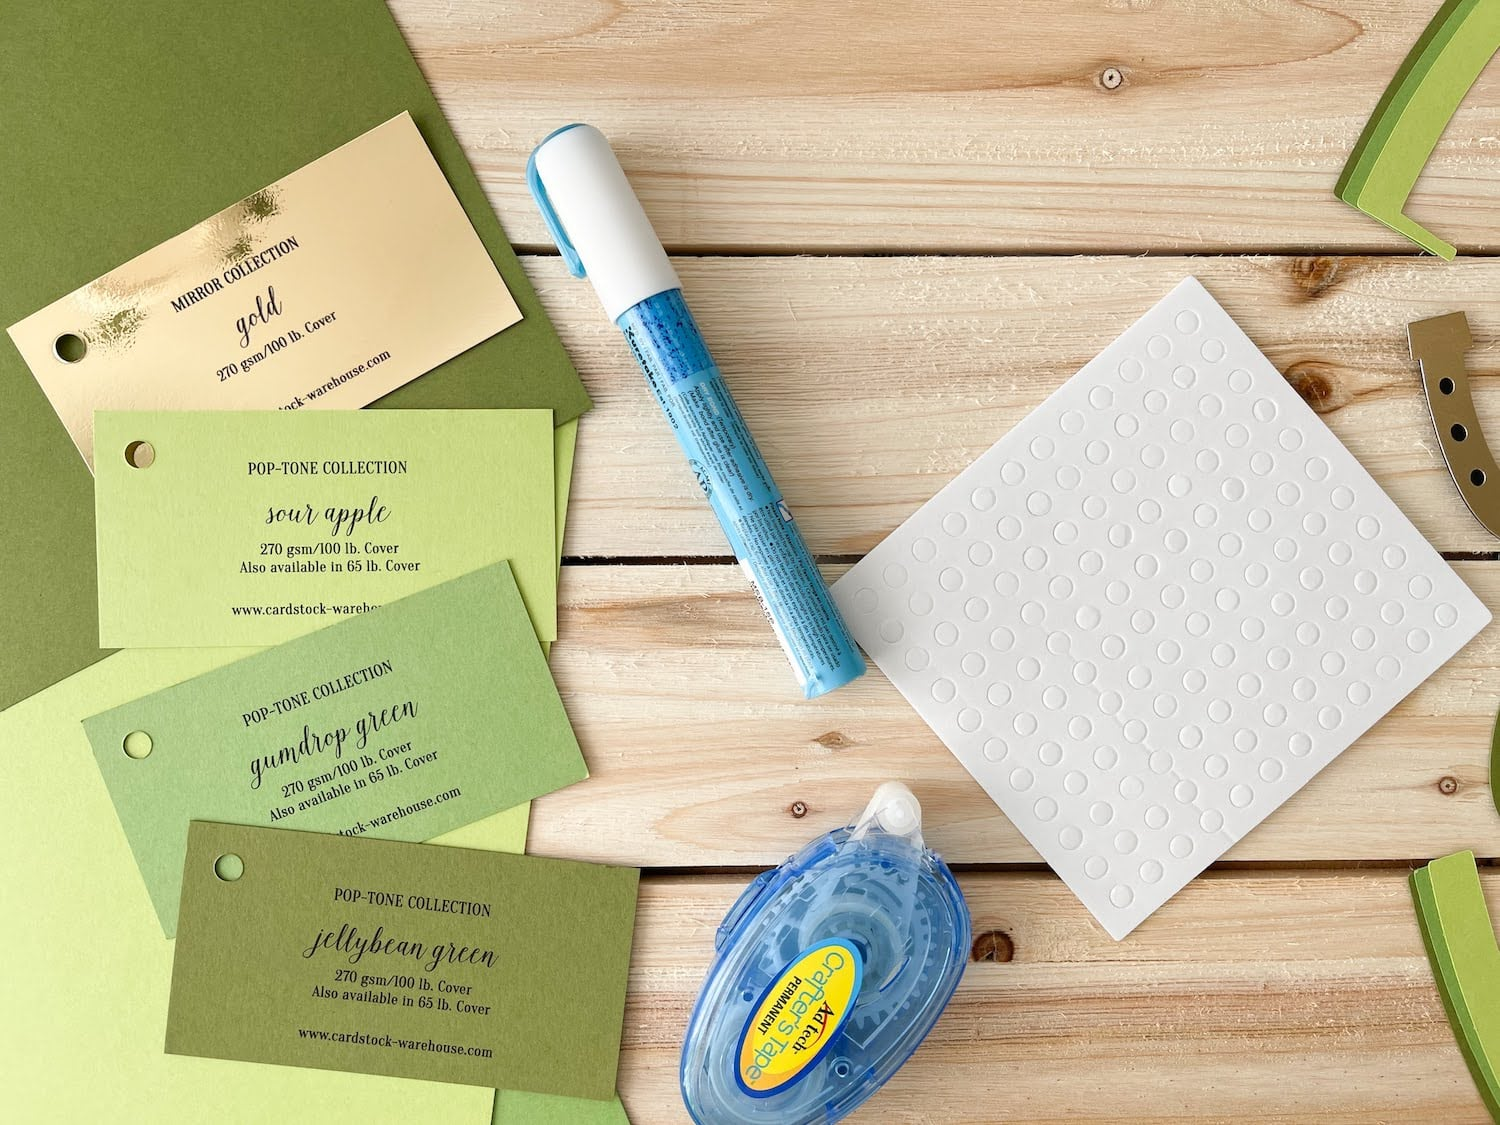 St. Patrick's Day Luck Card Supplies